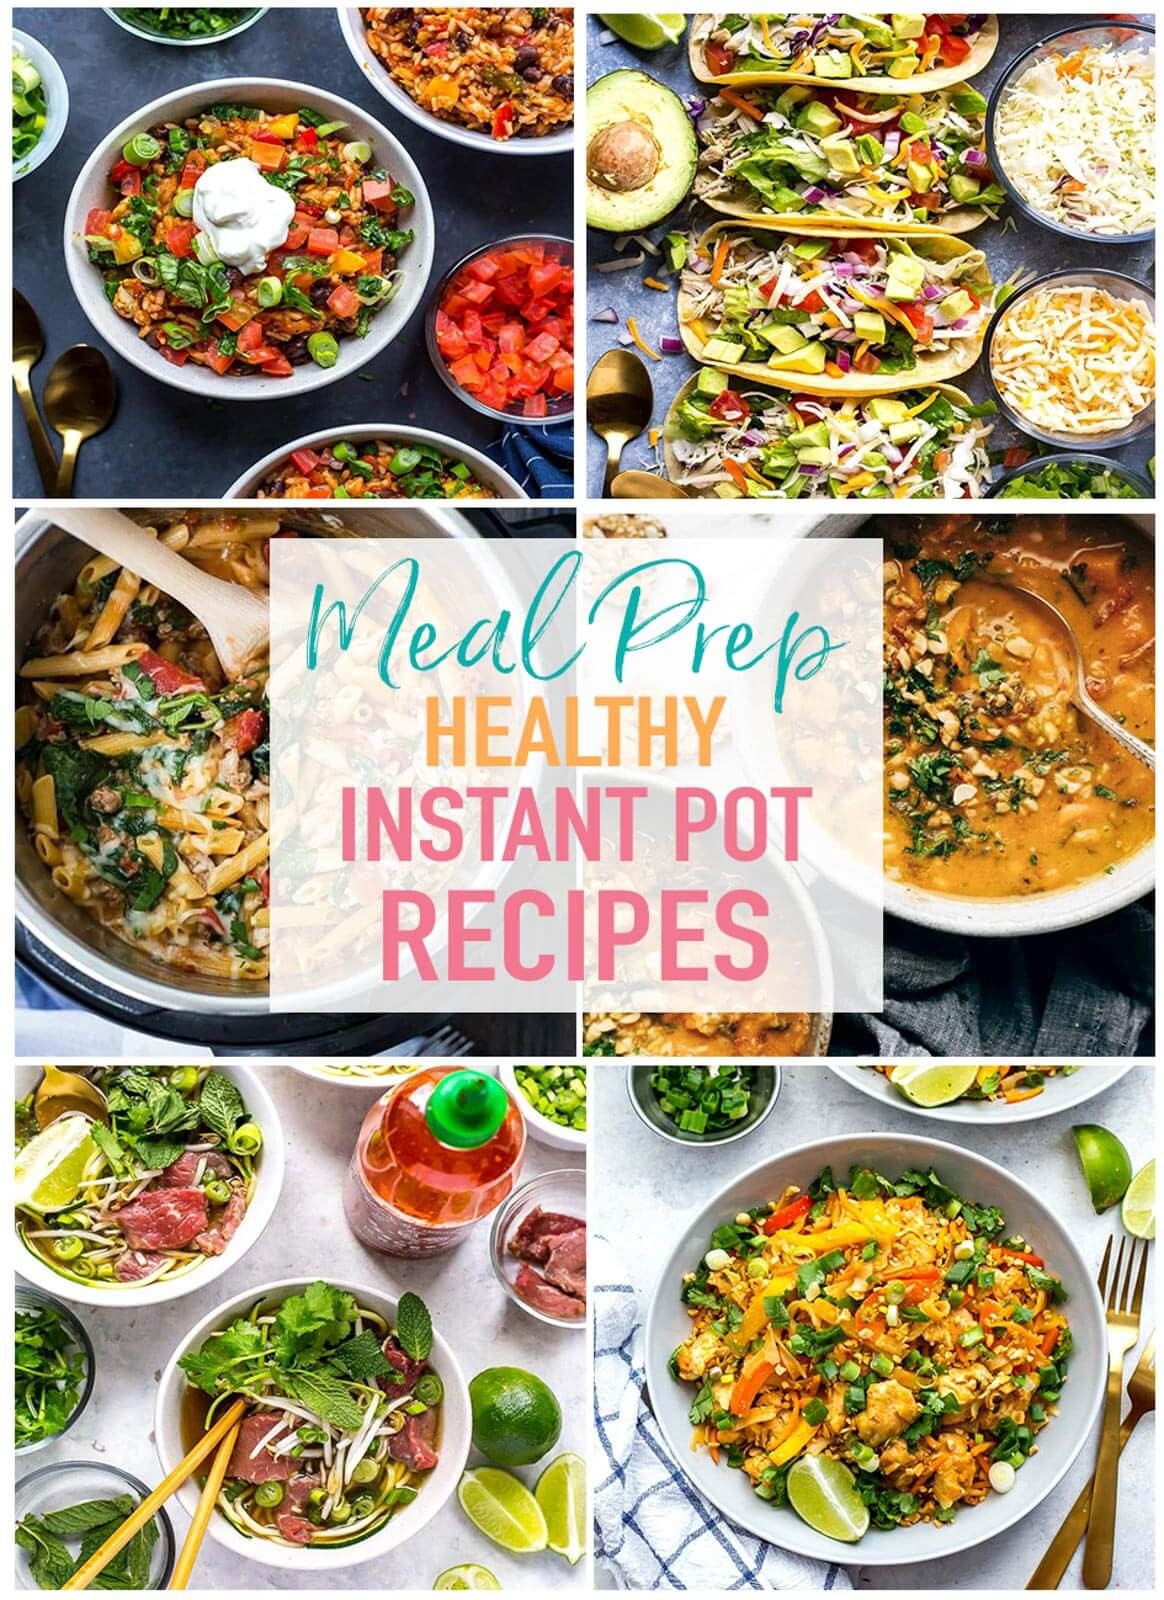 Healthy Instant Pot Recipes  17 Healthy Instant Pot Recipes for Meal Prep The Girl on